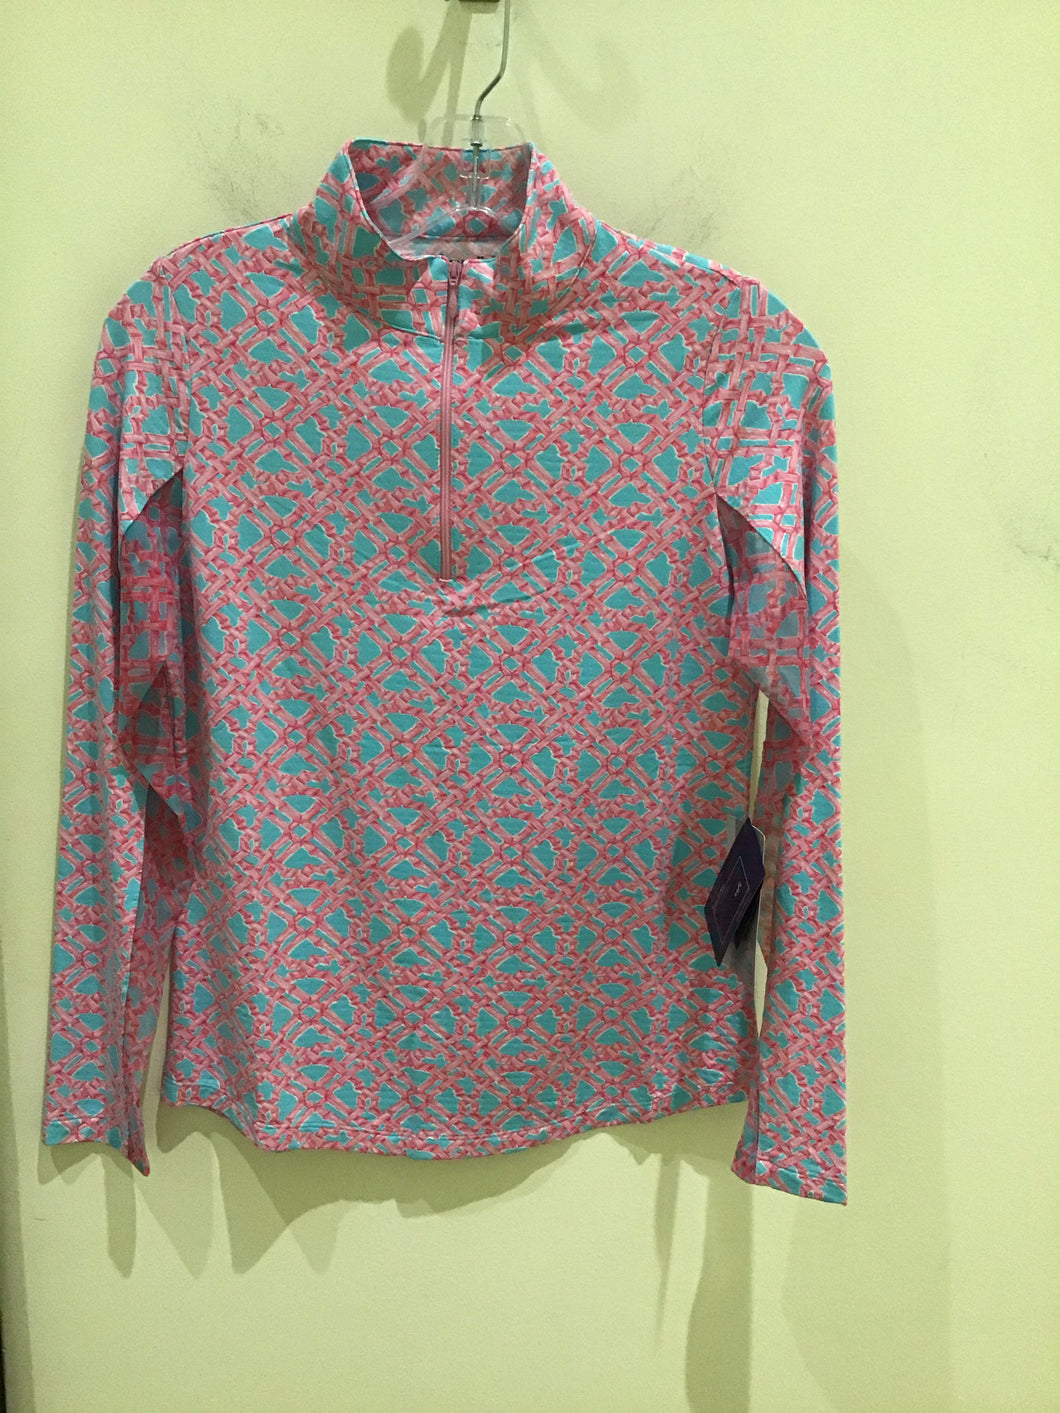 Long sleeved zip Mock Neck in Bali Seafoam/Pink